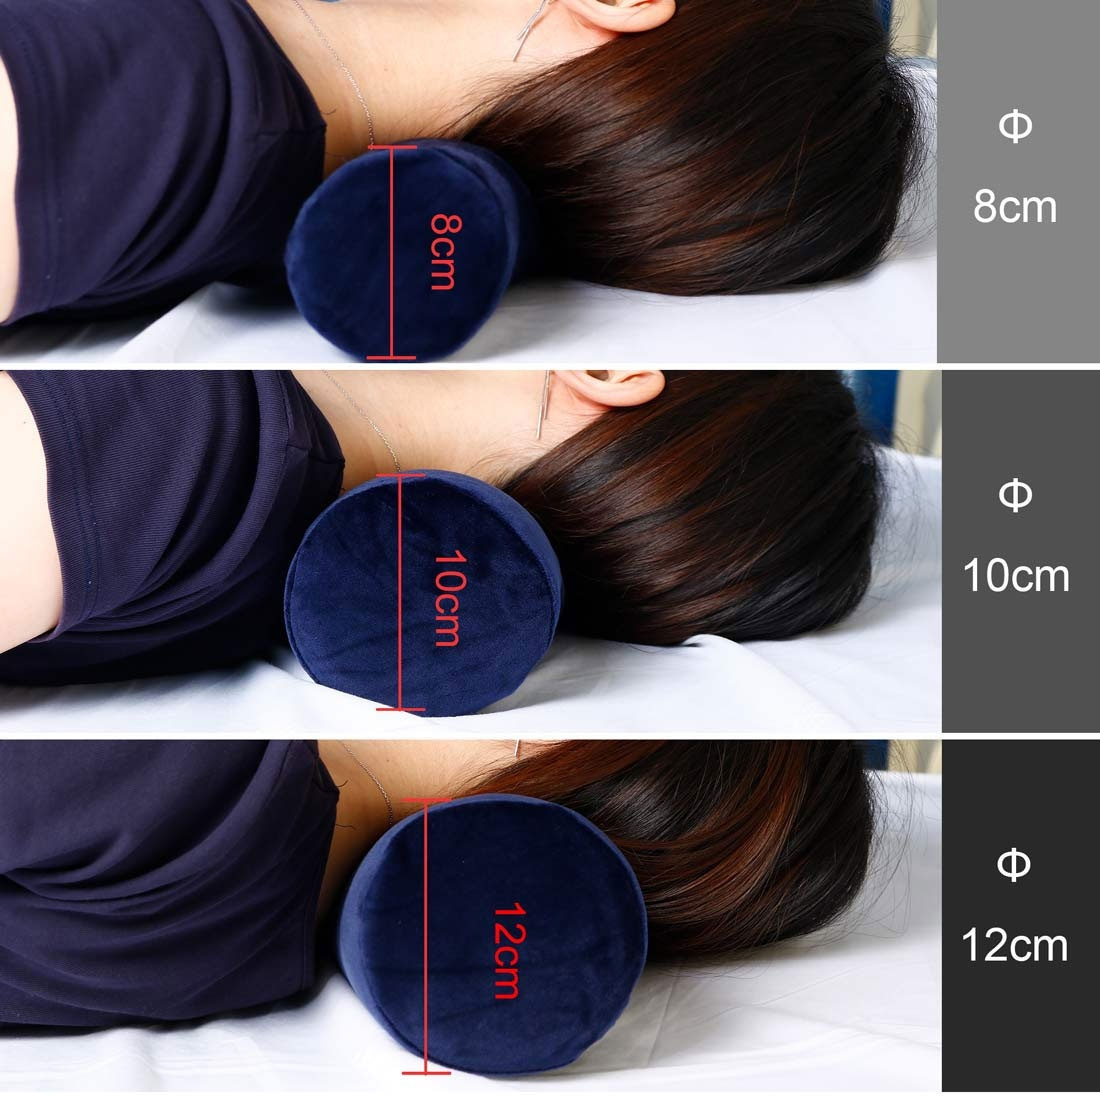 4 Color Round Memory Foam Pillow Cervical Roll Bolster Neck Head Support Pillow with Washable Cover